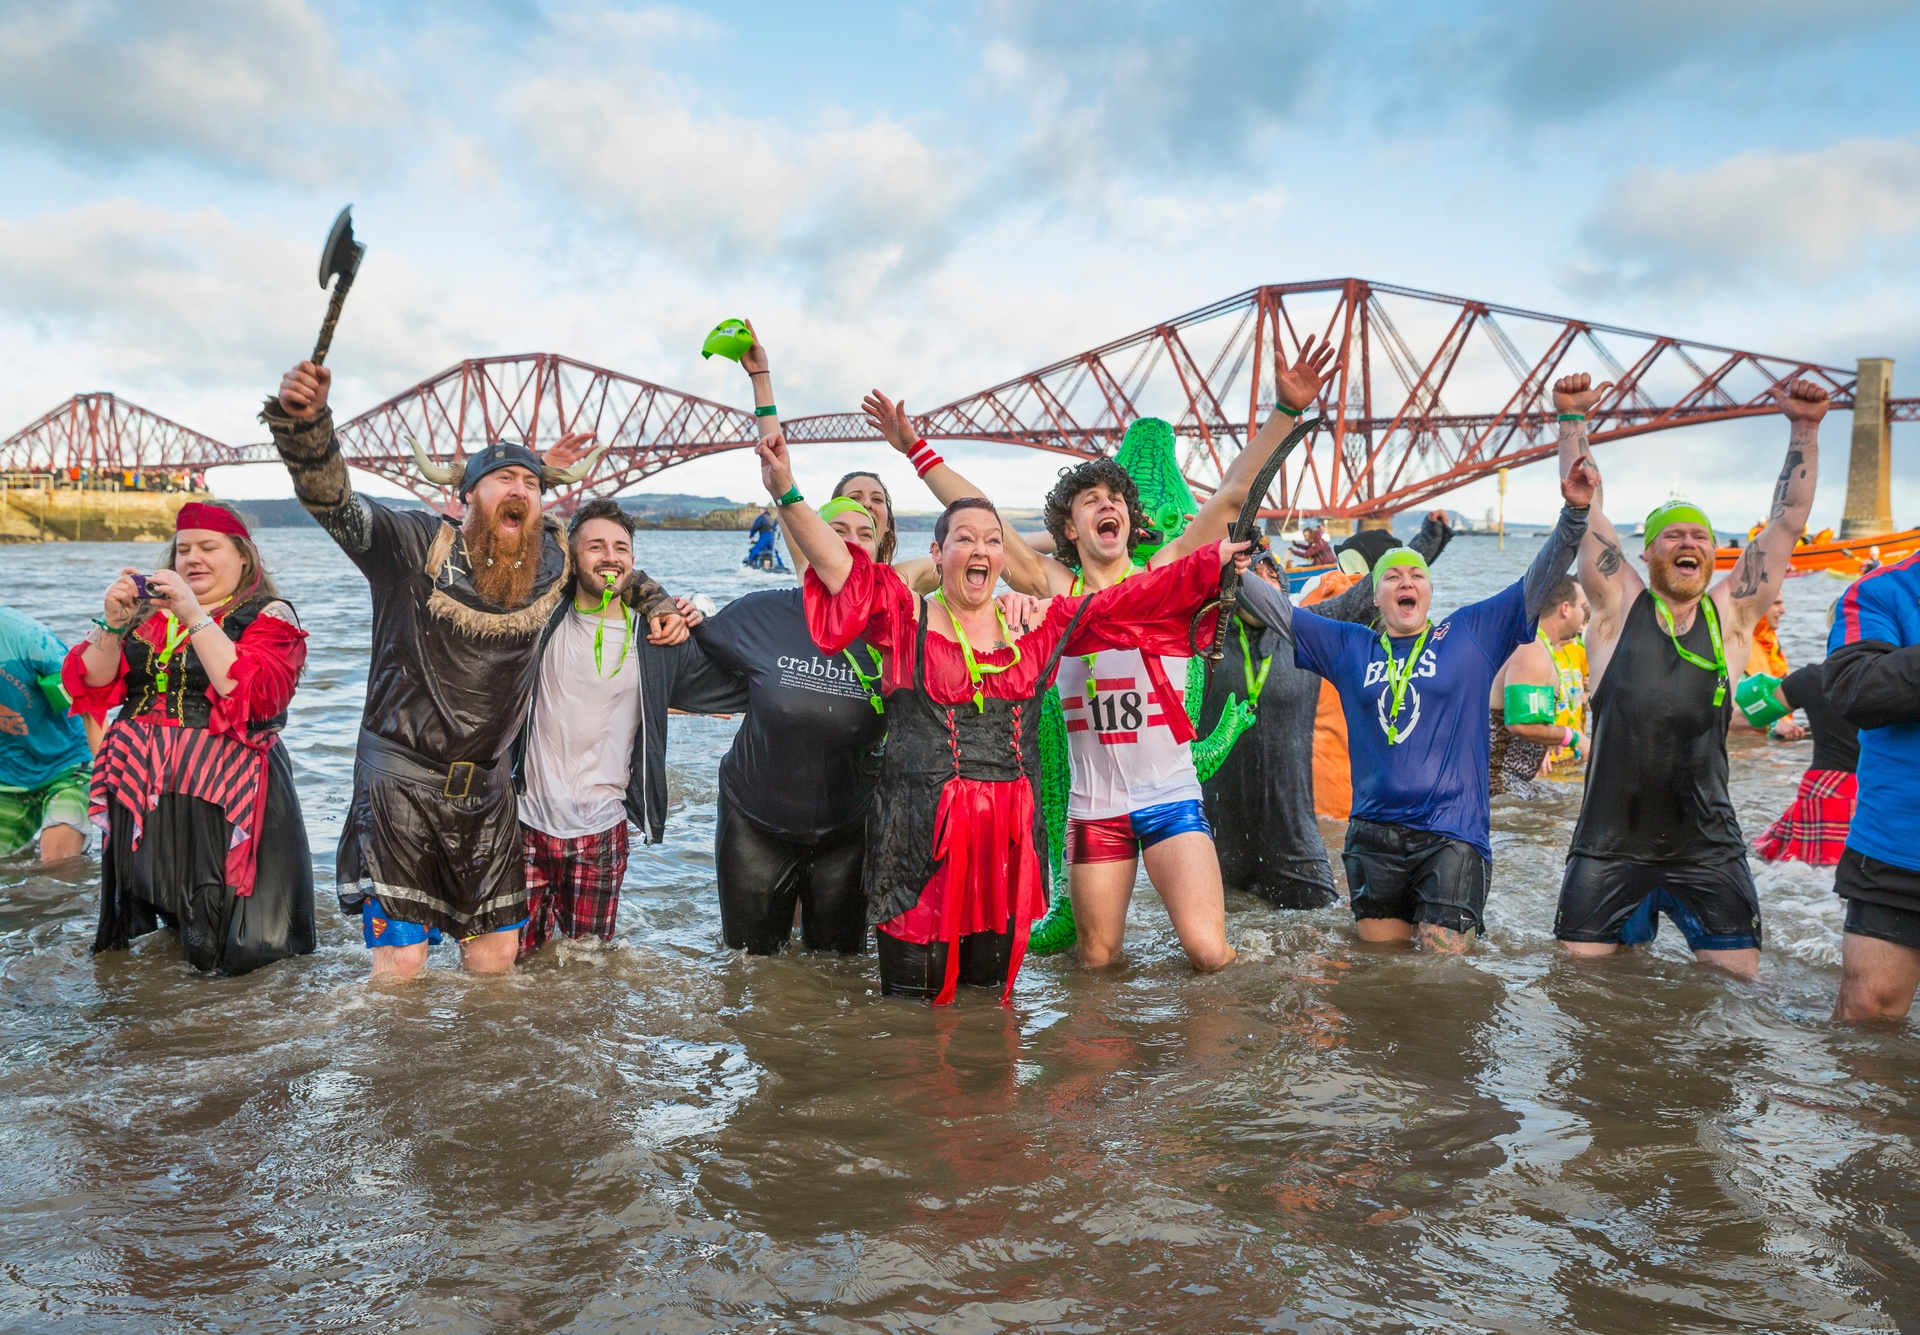 The Loony Dook on New Year's Day in South Queensferry